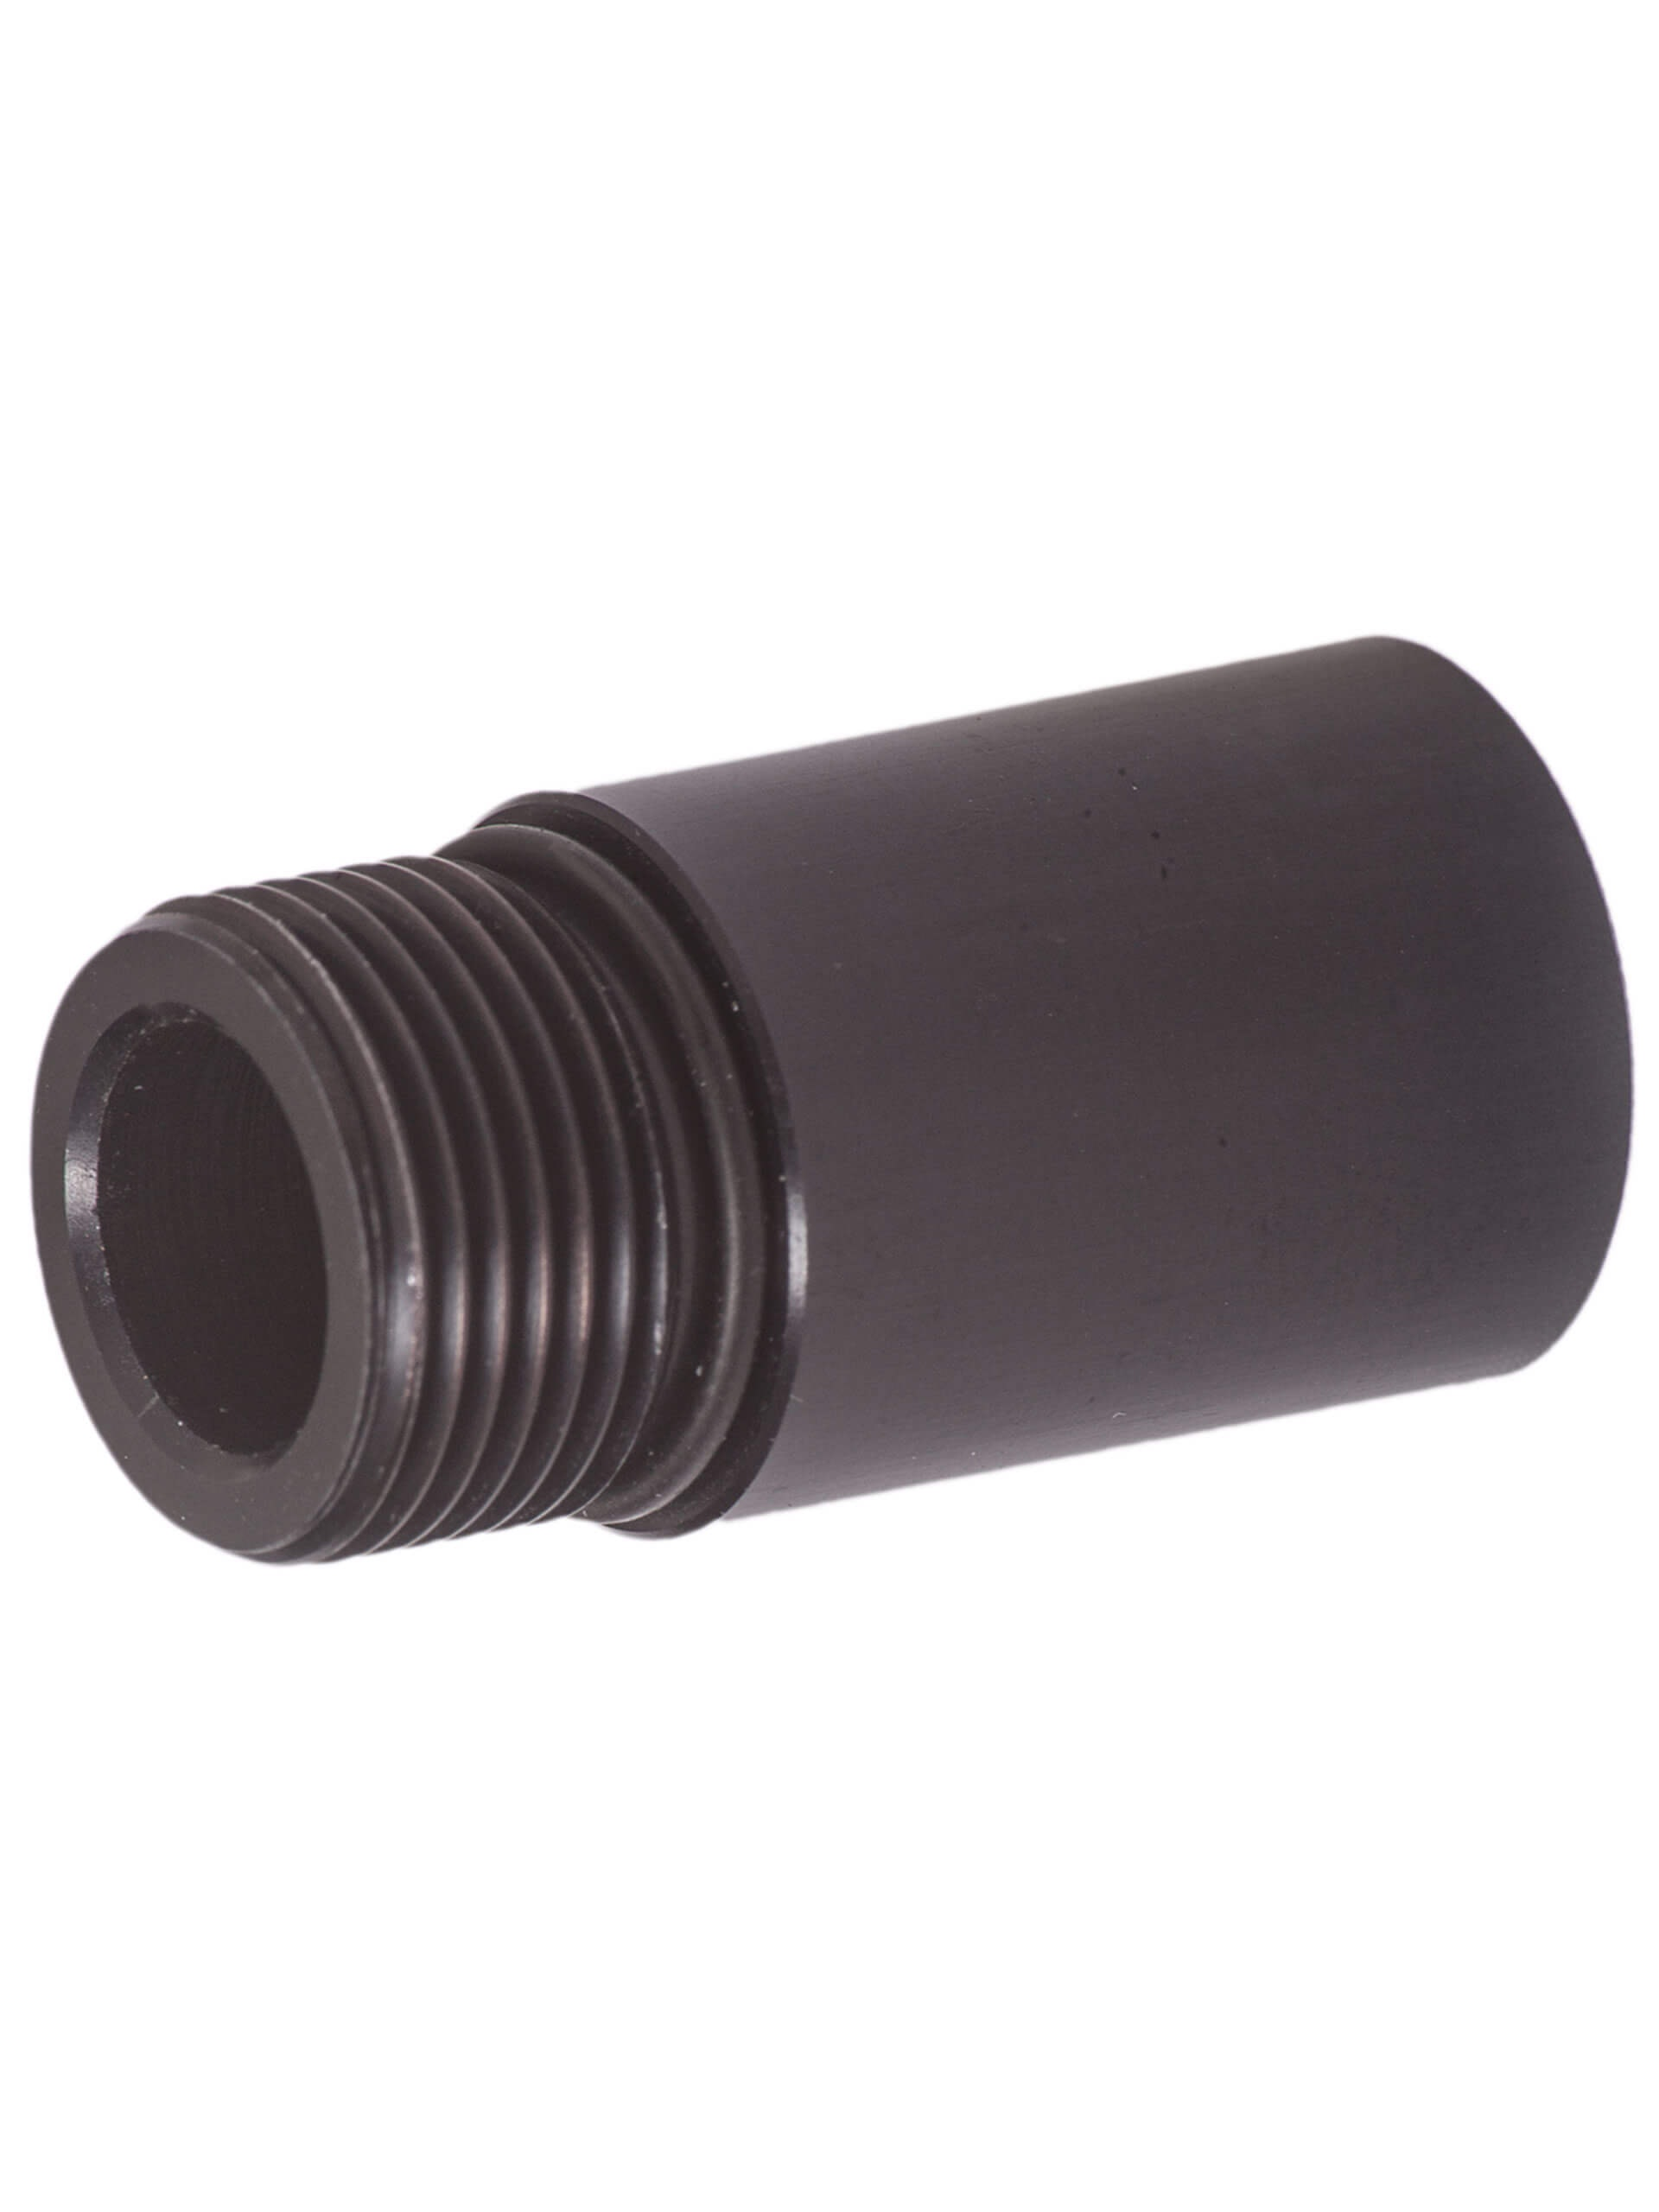 Lees Precision Engineering CNC Machined 14mm CCW Thread Adapter for  Umarex/VFC & KSC/KWA MP7